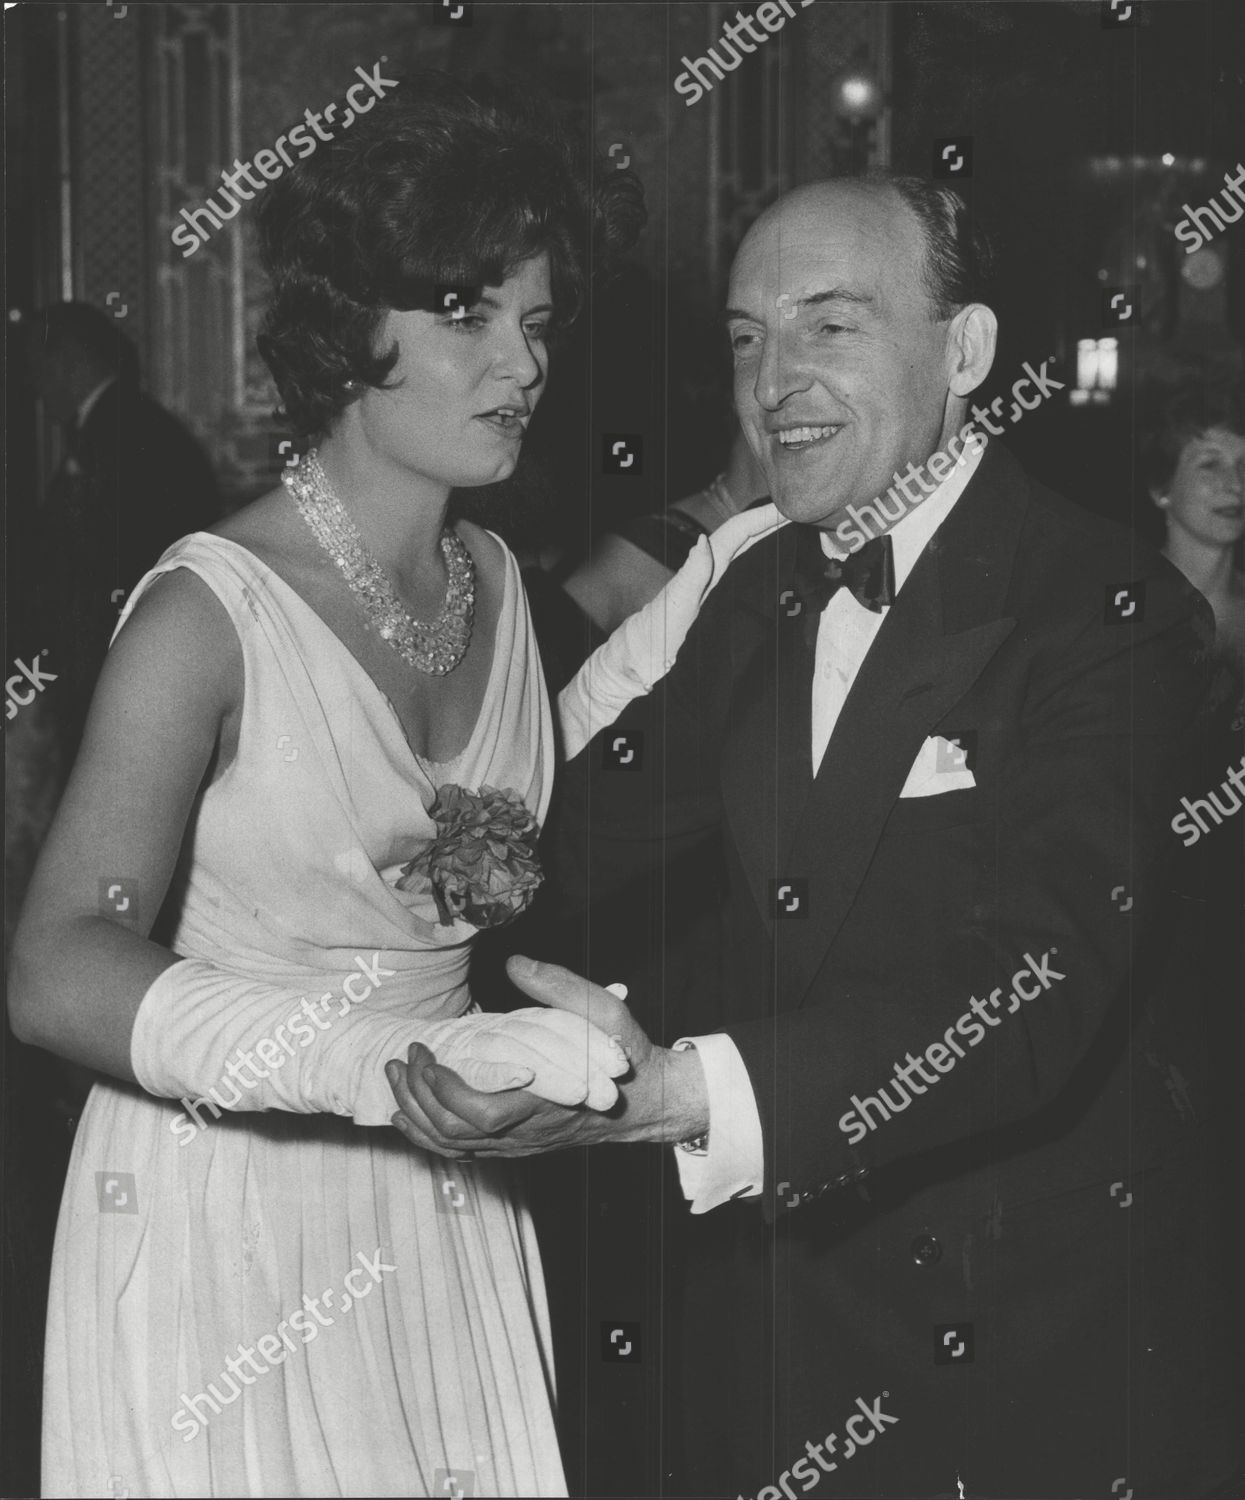 Stock photo of Mr Brian Maccabe Former Olympic Athlete Now Chairman Of Foote Cone And Belding Dancing With Mrs Judy Auld At The Civic Ball At The Brighton Pavilion. Box 0557 040315 00095a.jpg.